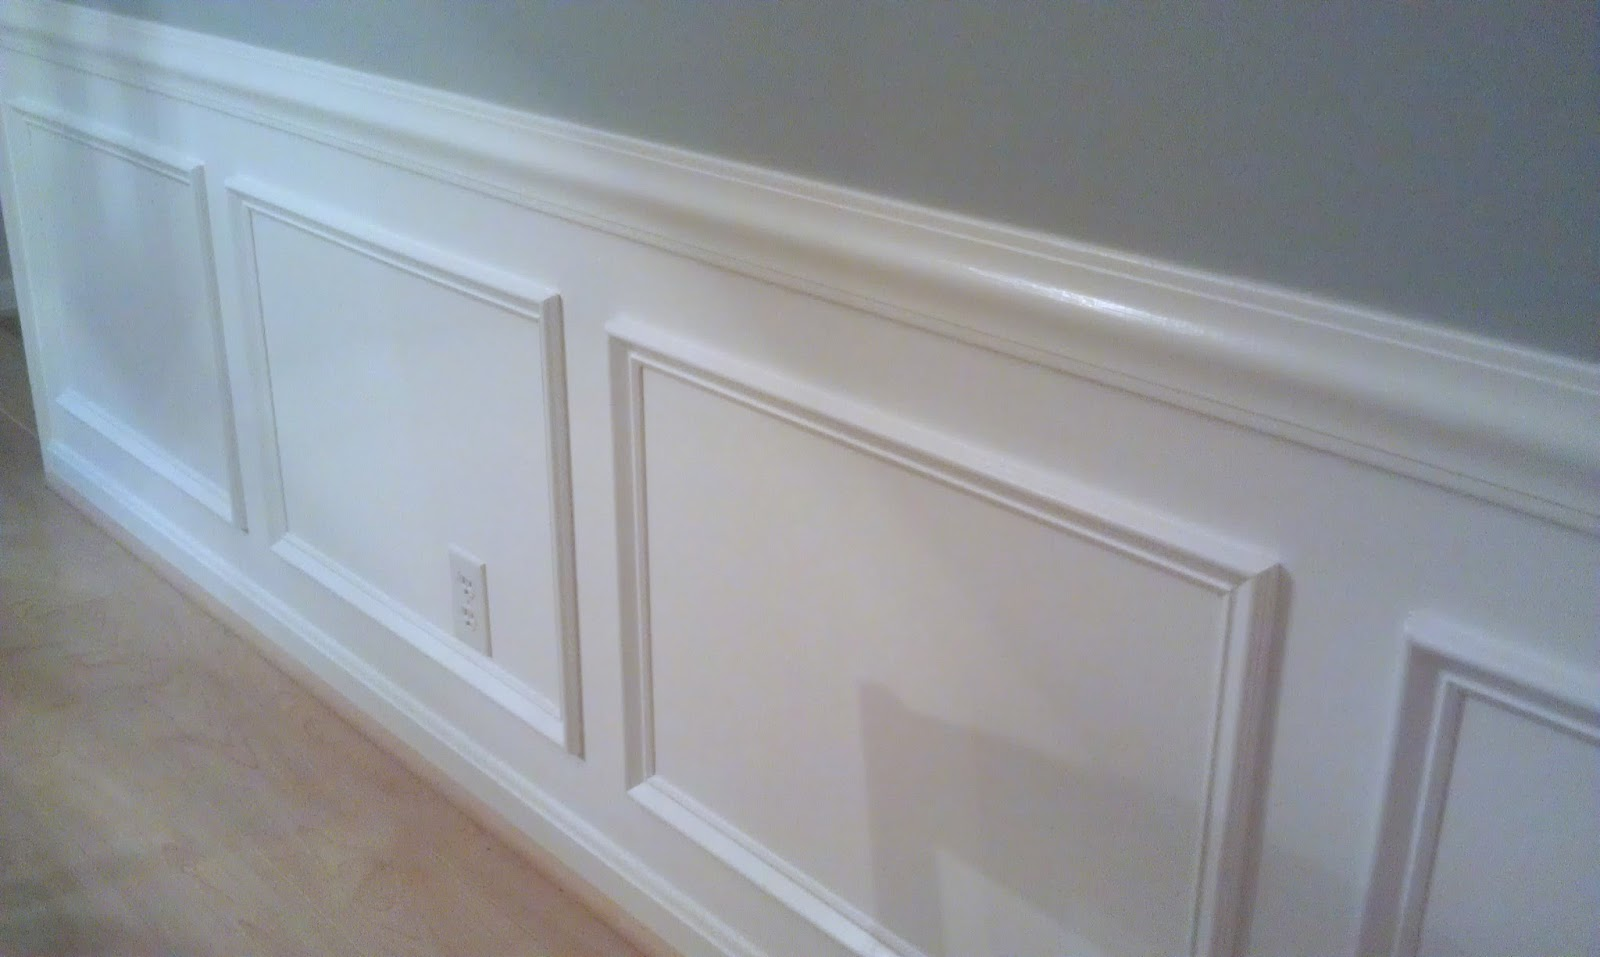 Homemade By Holman: Picture Frame Moldings and a Kitchen ...